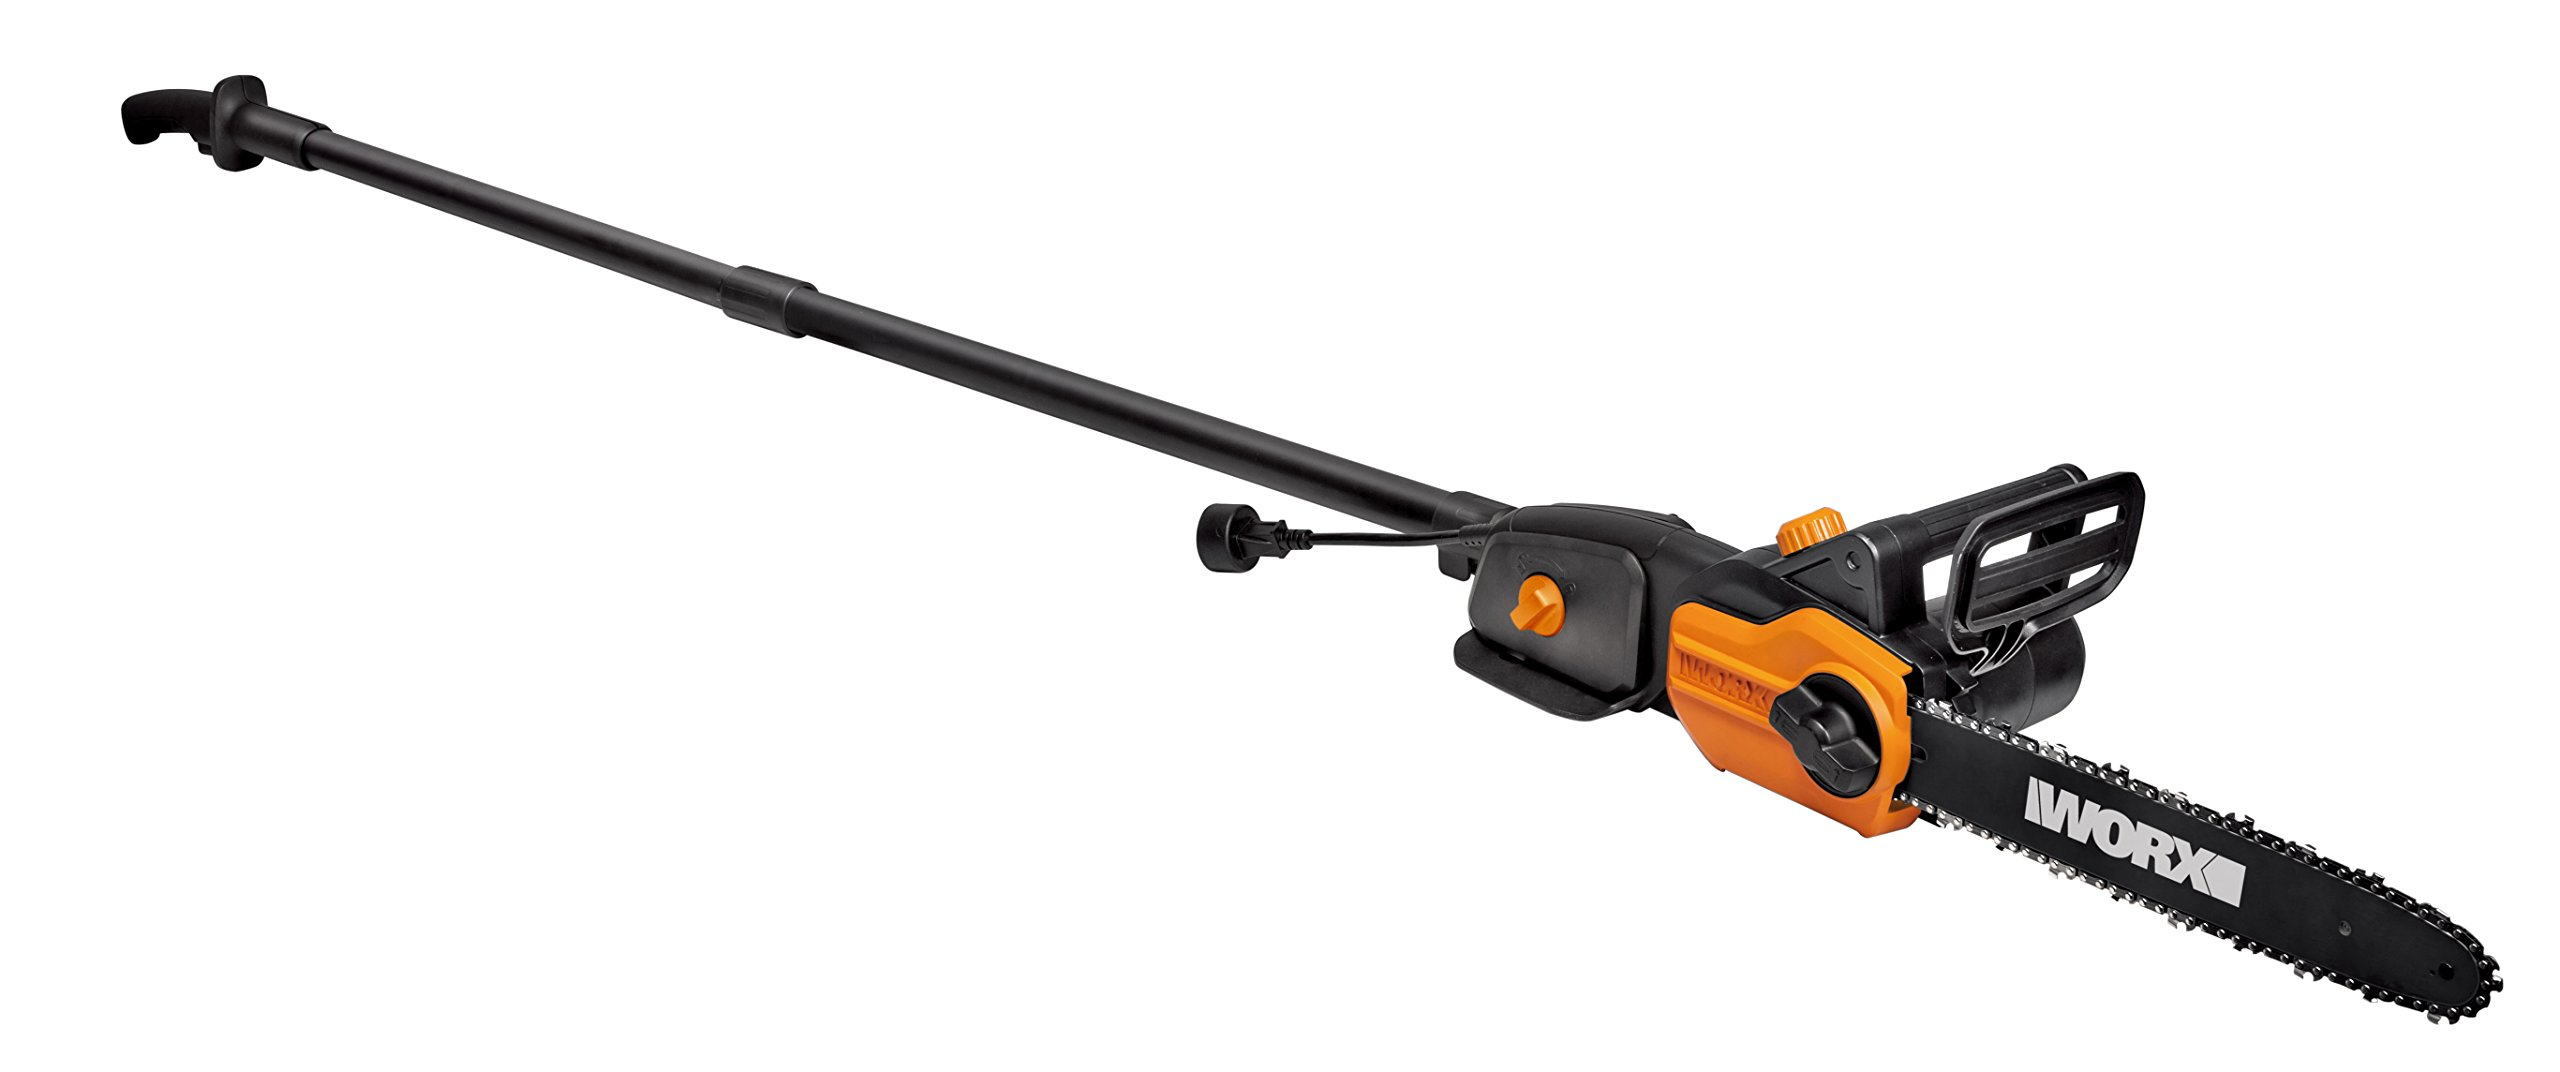 WORX WG309 8 Amp 10'' 2-in-1 Electric Pole Saw & Chainsaw with Auto-Tension by WORX